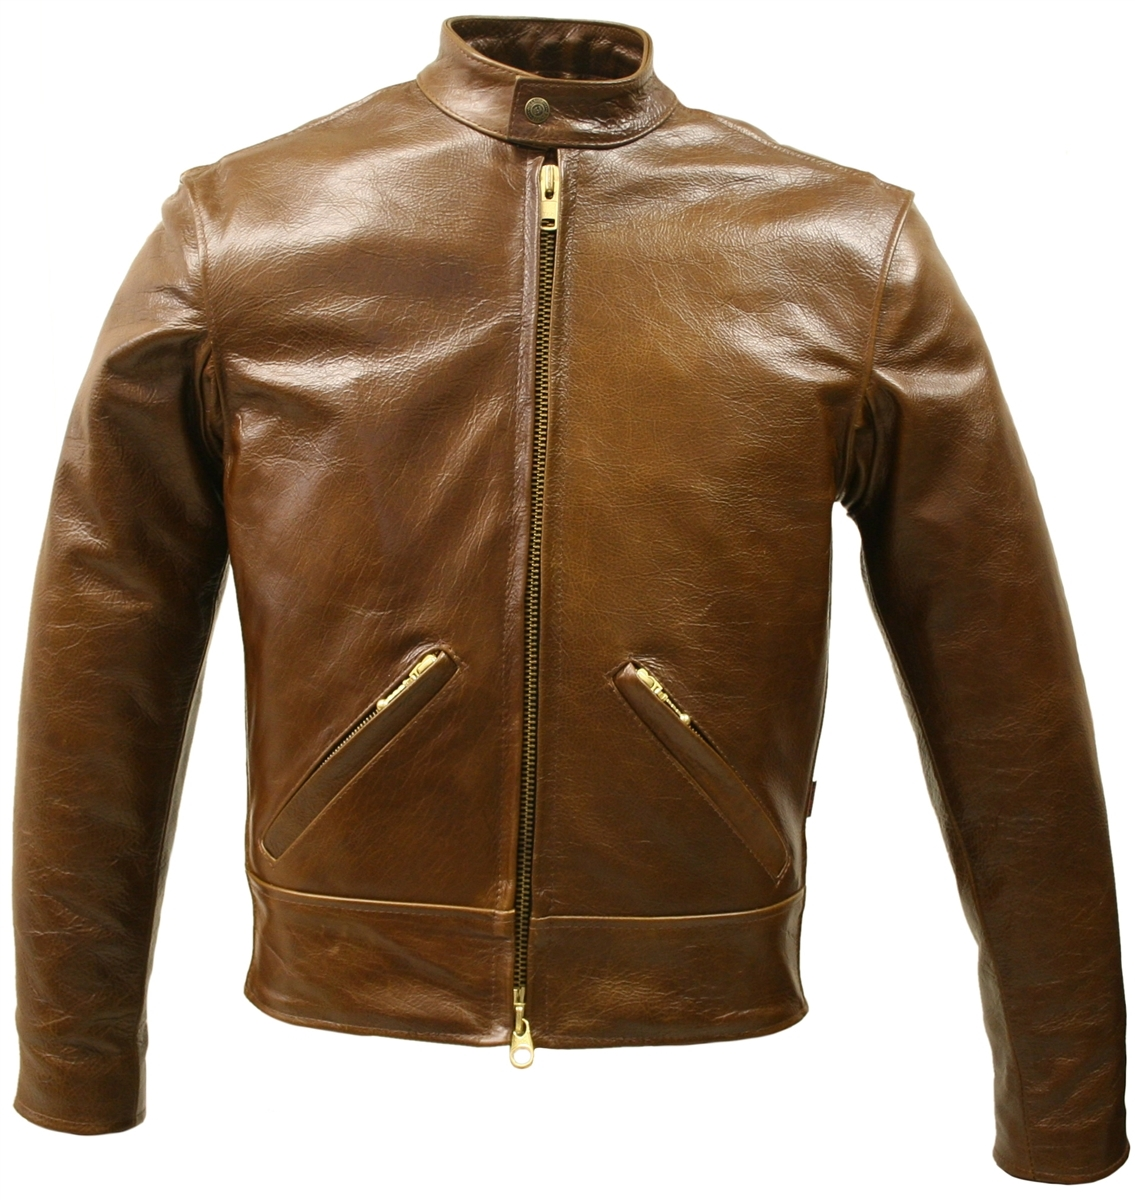 A special edition of a special Jacket unites the historic and functional half belted Jacket design with  tough, heavyweight, and water-resistant pull up Leather.   American Bison leather is over 40% stronge